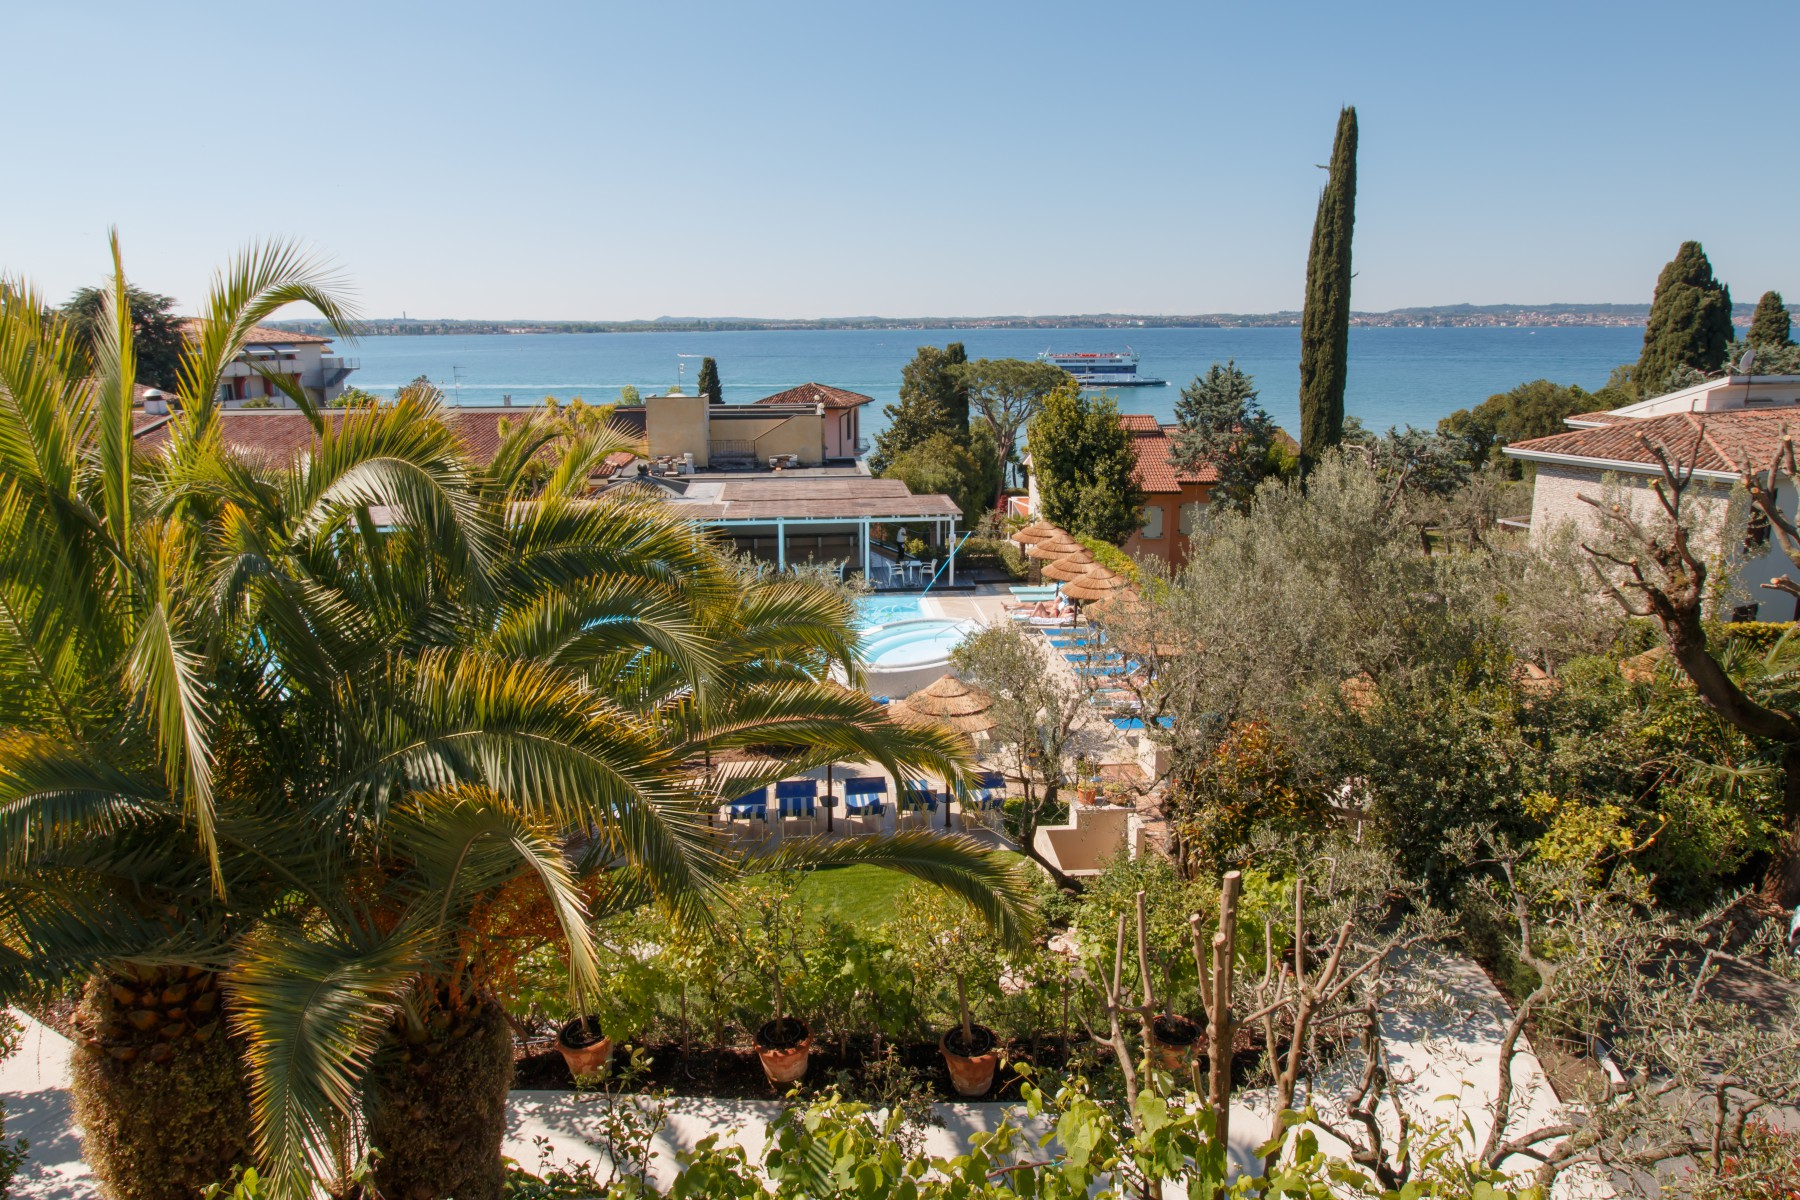 Photogallery Hotel 4 Stelle Olivi A Sirmione  Le Foto Dell